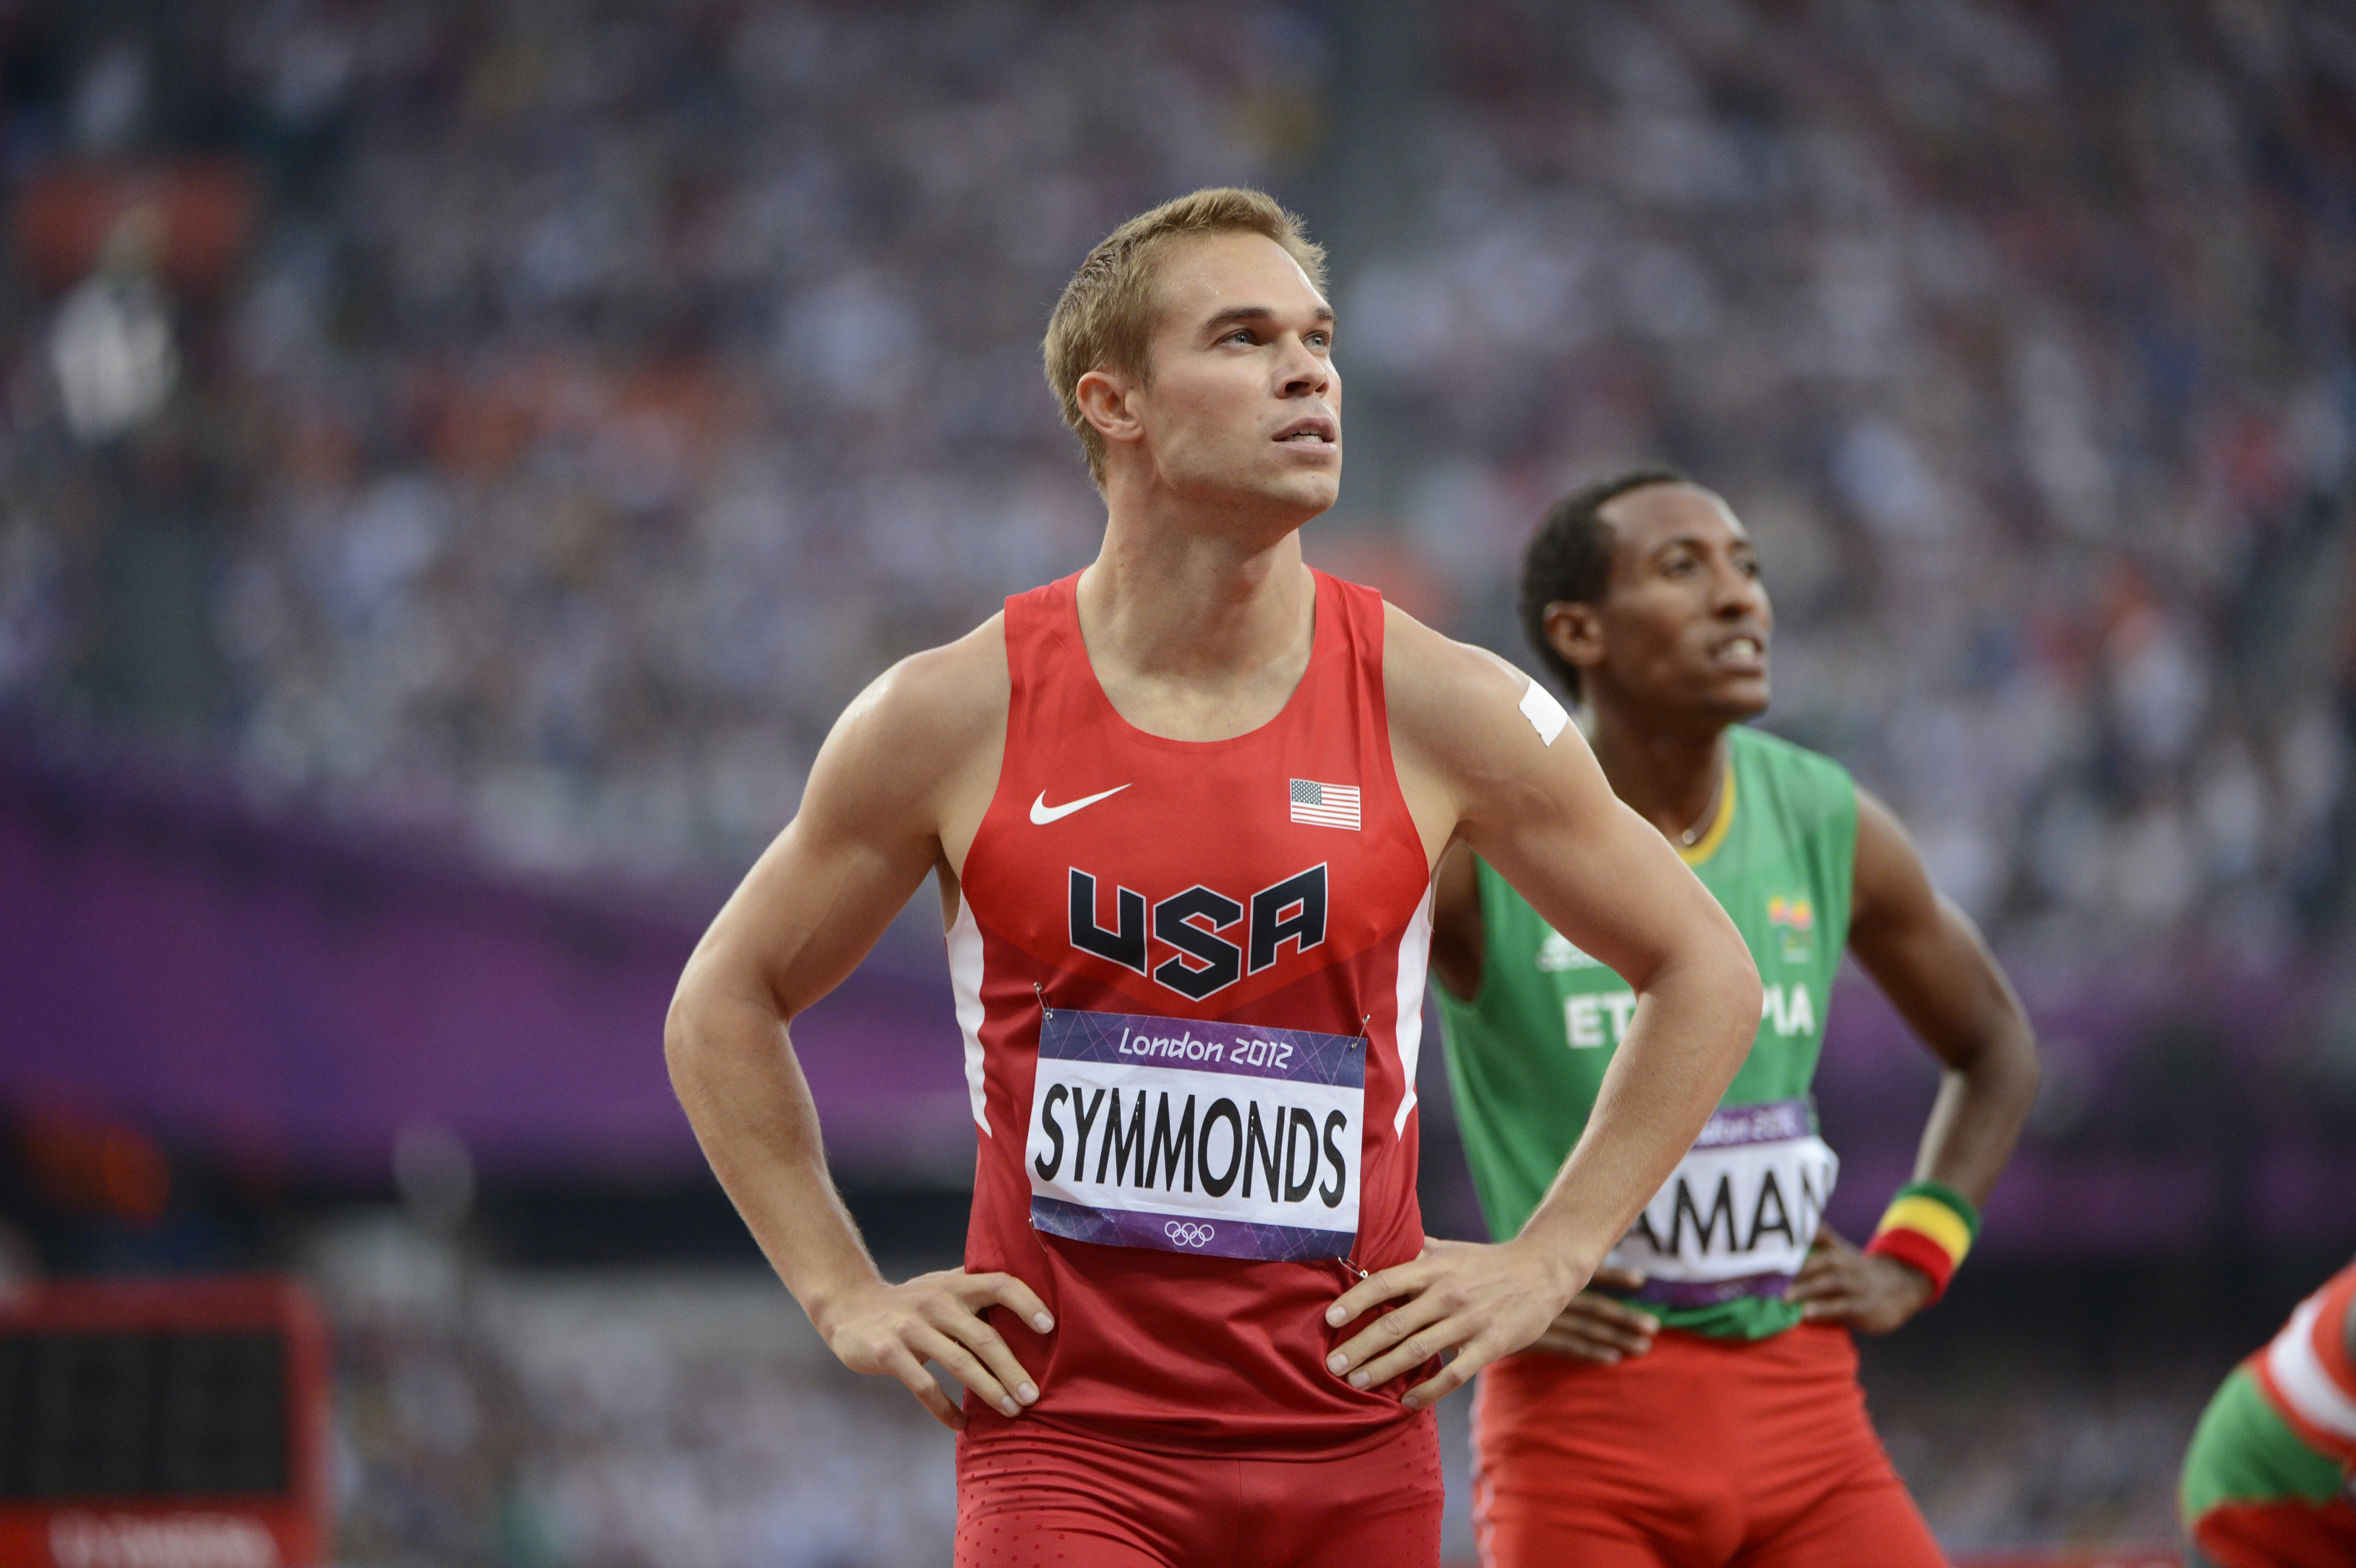 Nick Symmonds Next Marathon Will Be Eugene